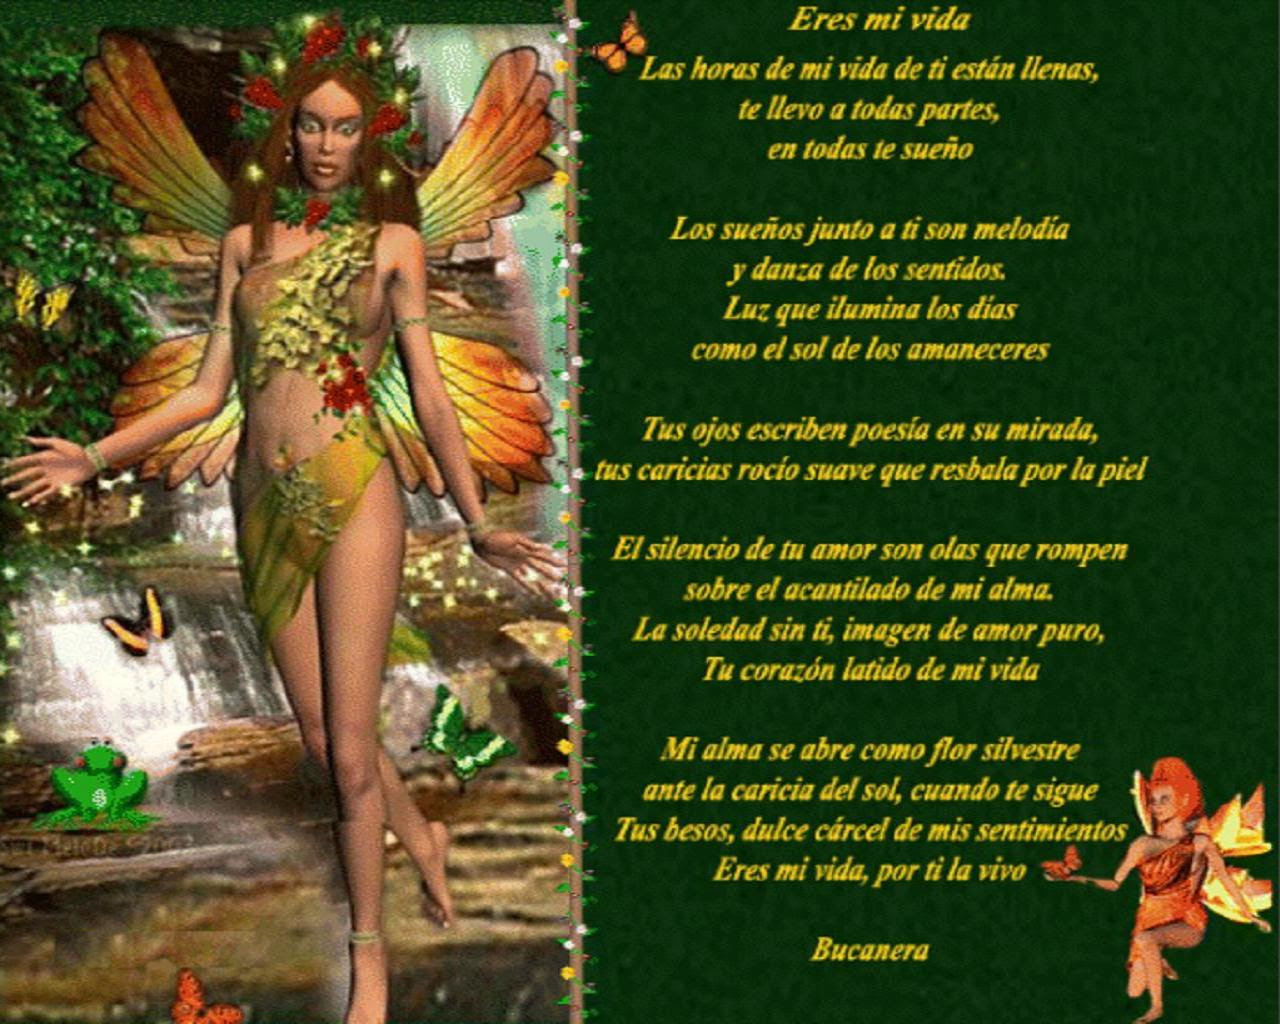 http://anaan.files.wordpress.com/2011/08/bucanera-053-eres-mi-vida.jpg